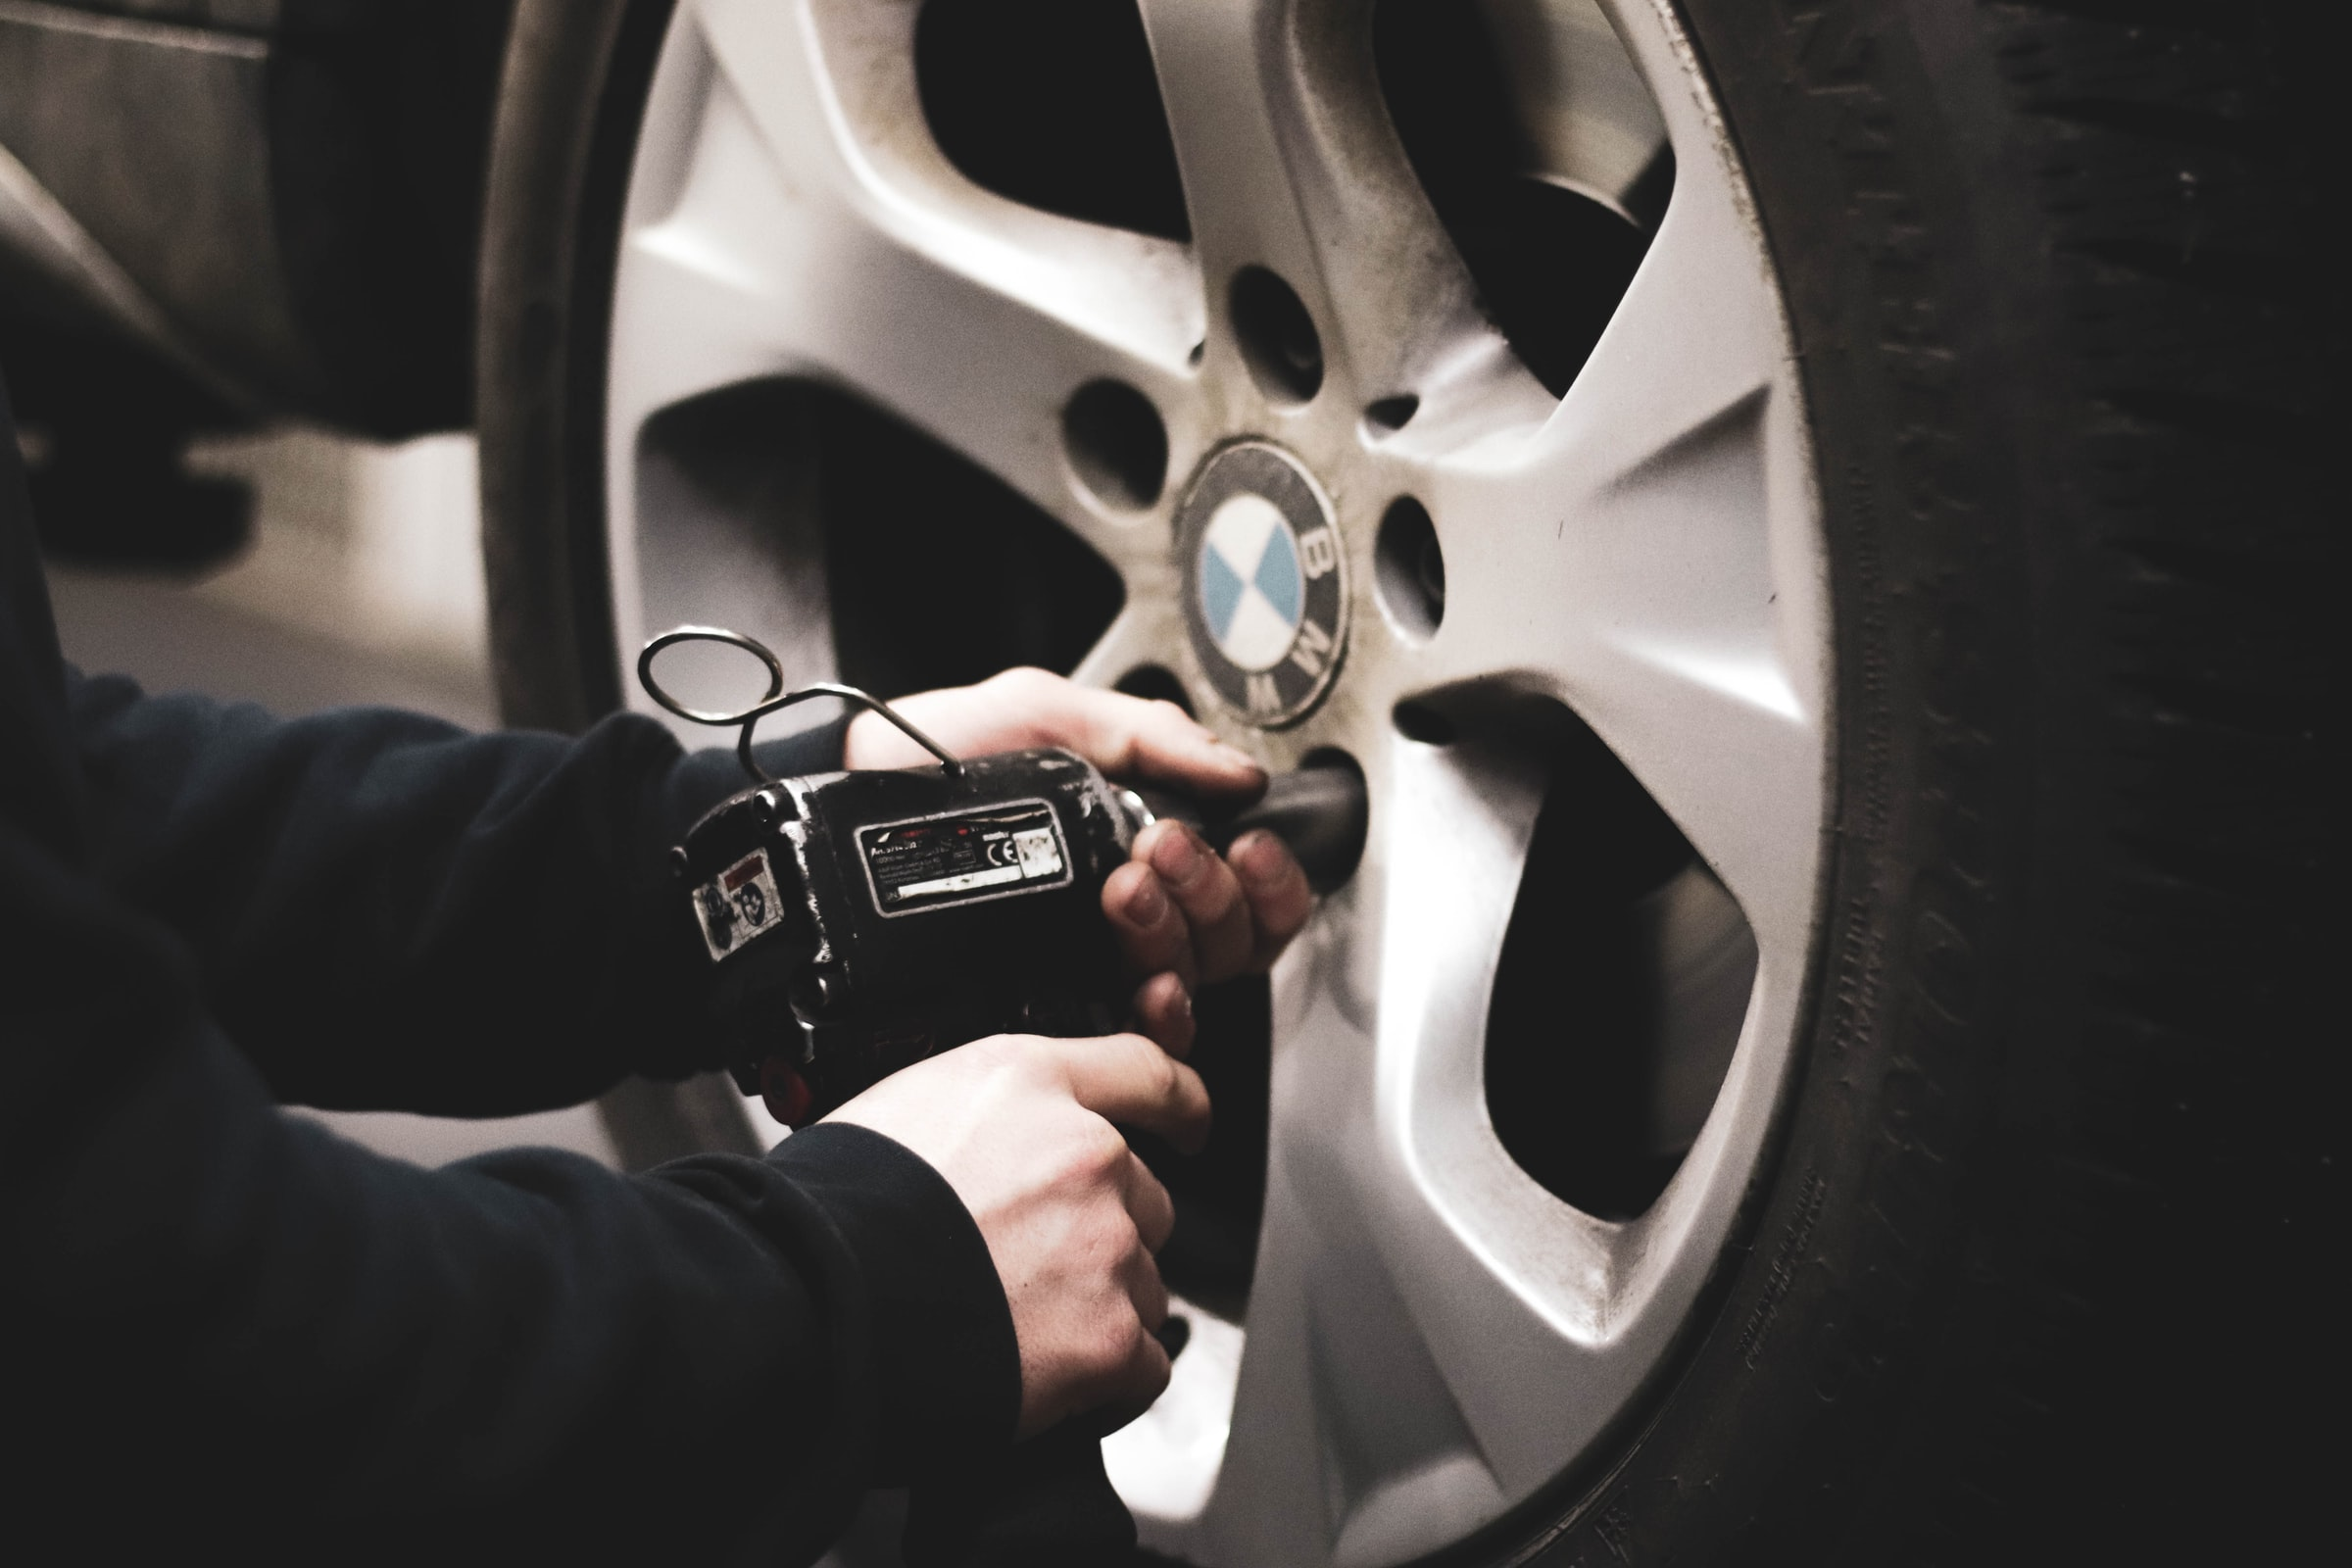 What Is Checked During Motorhome Servicing